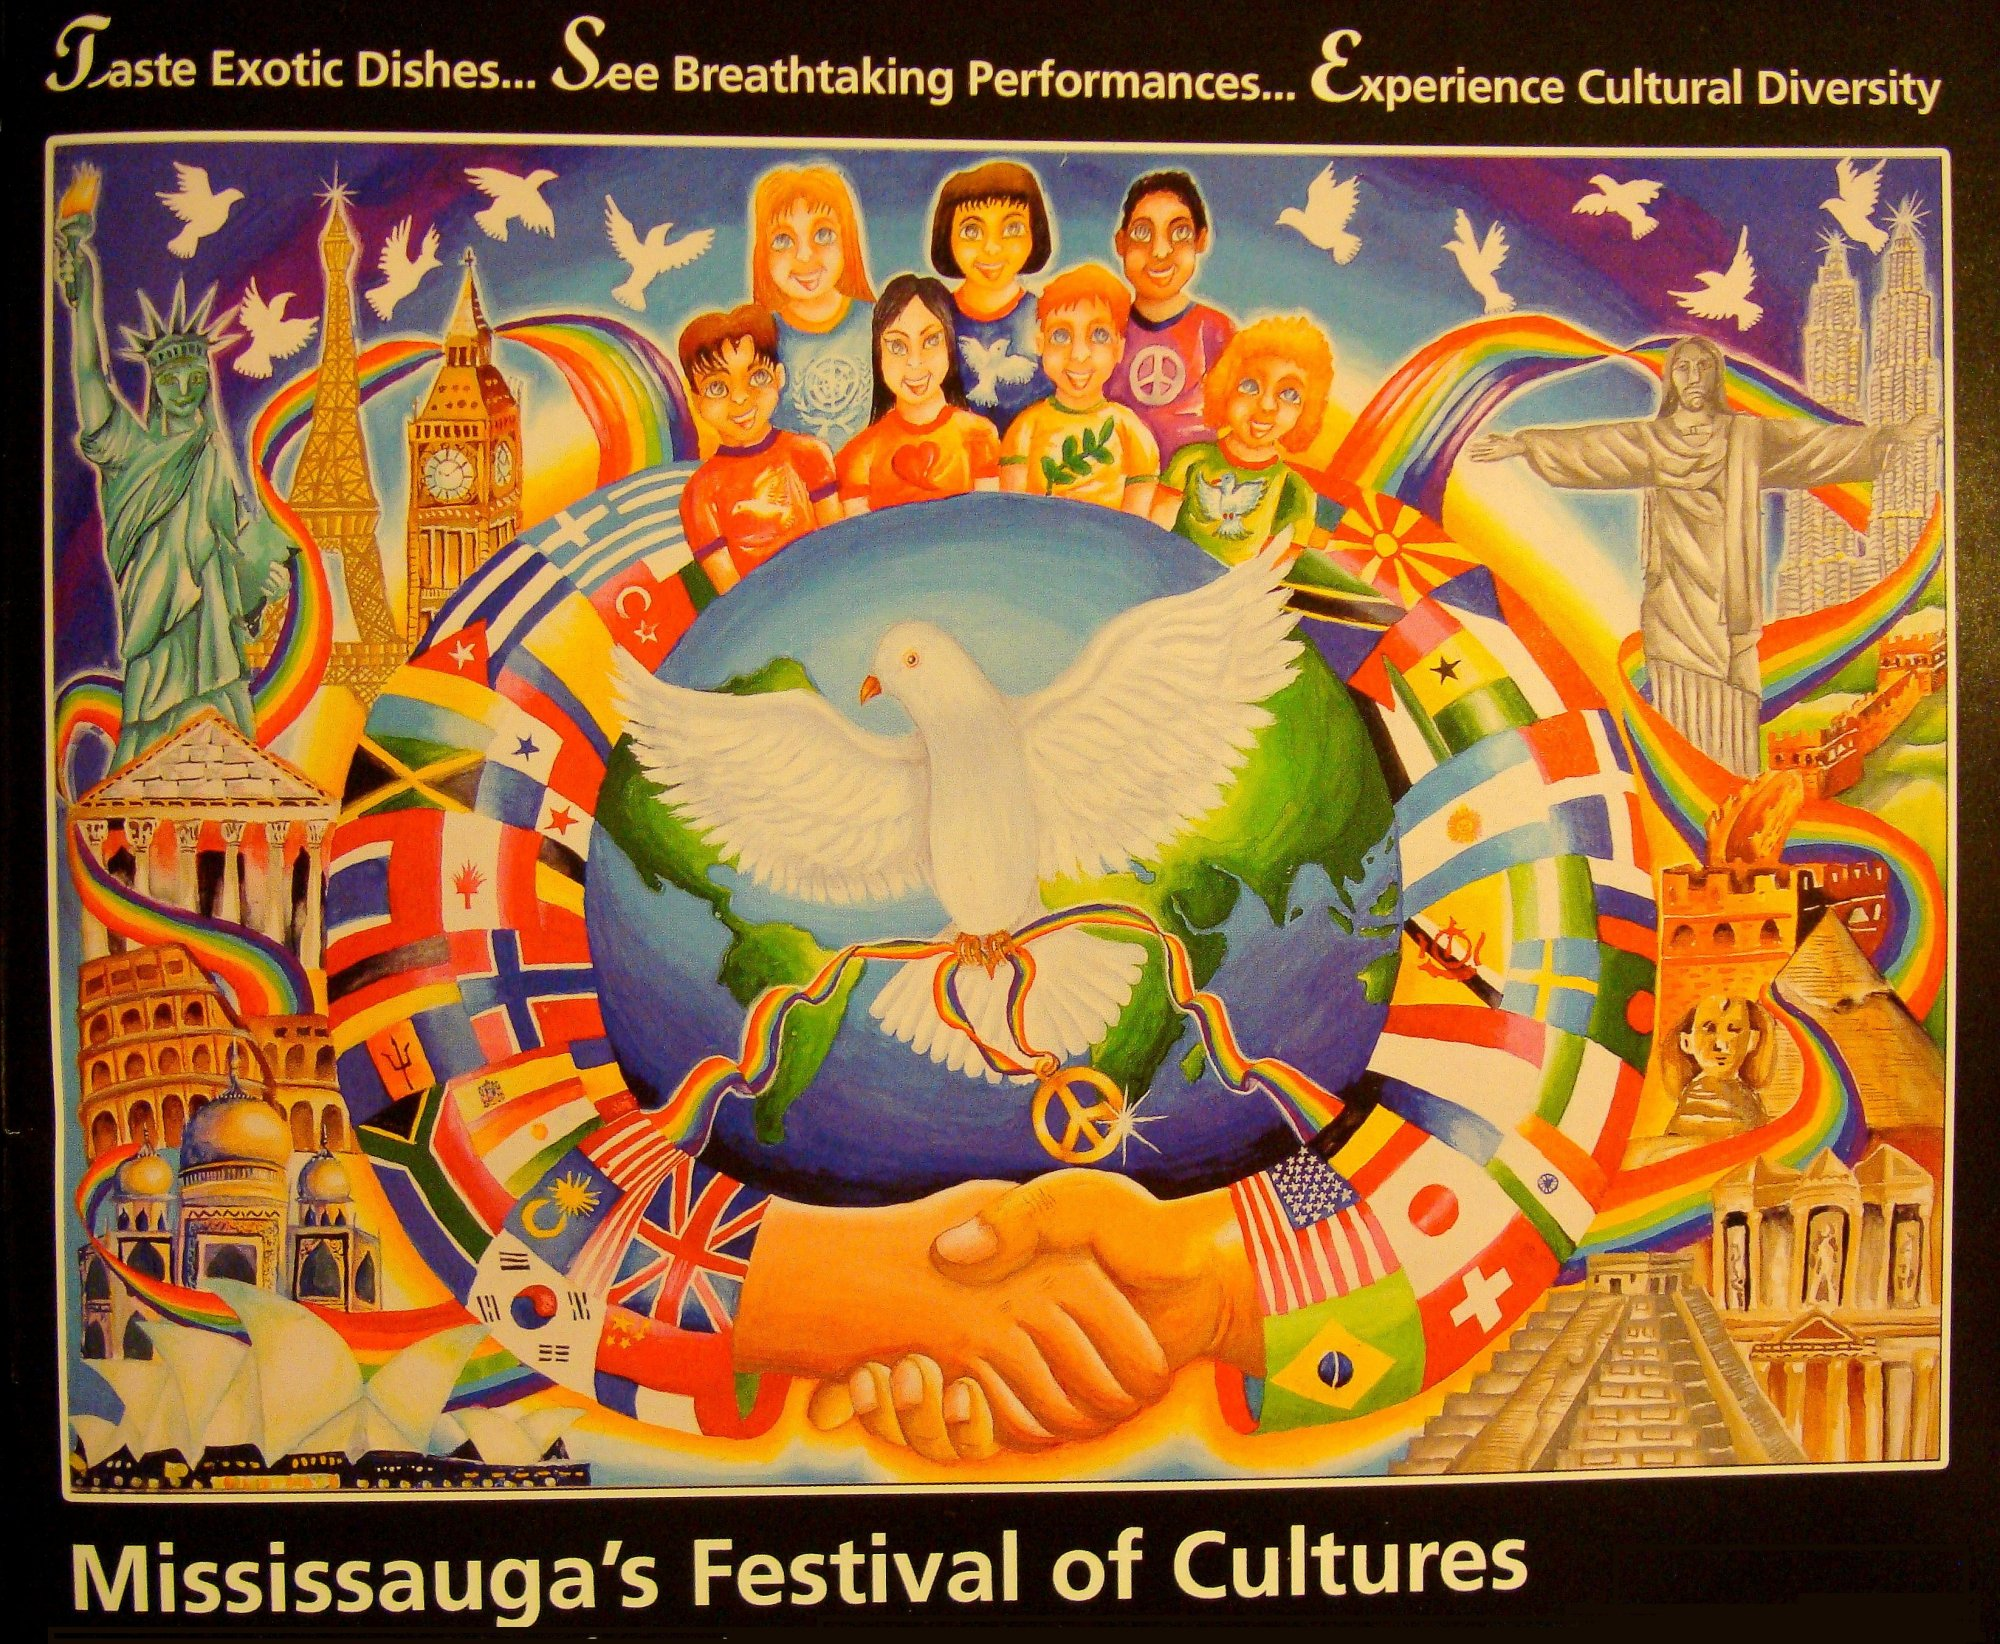 Carassauga June 3, 4, 5, 2011 image from cover of Carassauga 2011 Commemorative 26th Edition